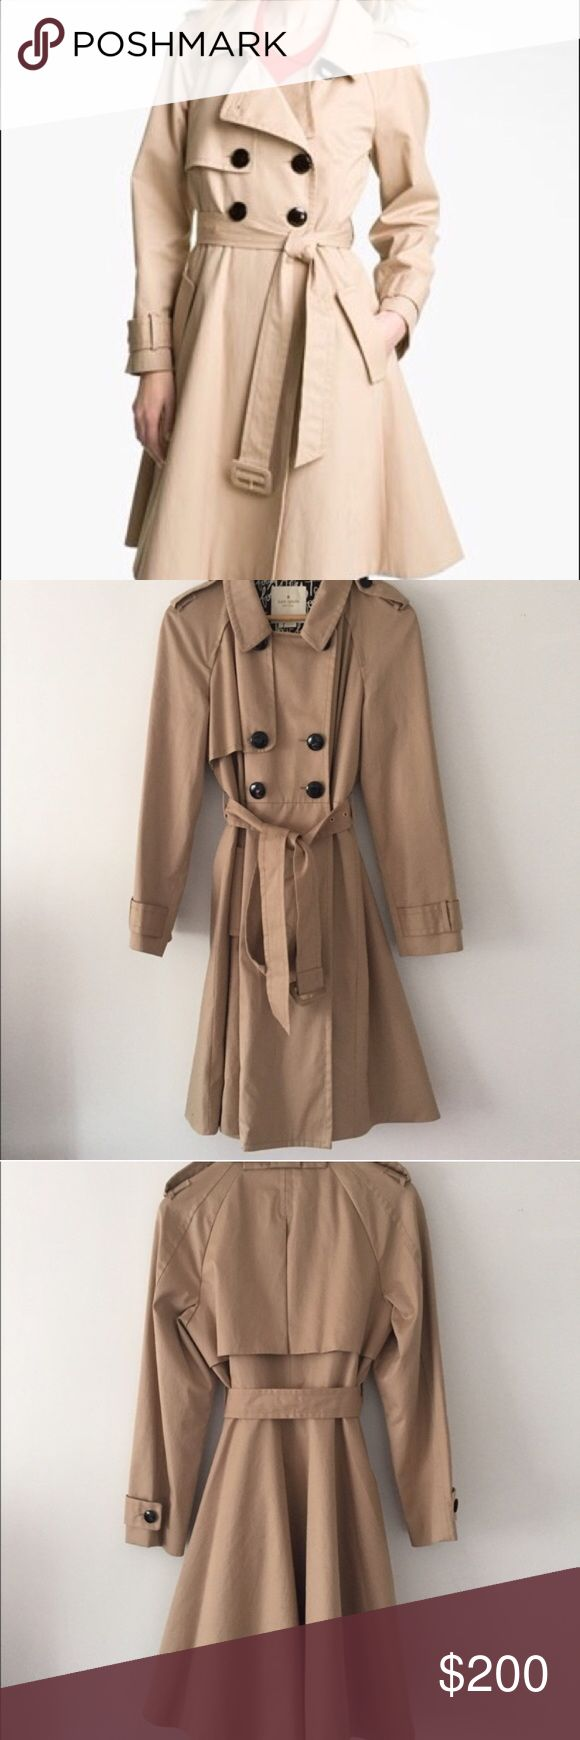 GORGEOUS kate spade trench!!! 💕💕 THE PERFECT TRENCH!!! It is seriously sooooo beautiful I just have so many trenches!!! Lol 💕💕💕 Fits beautiful on and has a full like skirt. Closes on the waist and is flattering on all body types!! BRAND NEW WITHOUT TAGS - NEVER BEEN WORN! Please feel free to ask me any questions and I am OPEN TO OFFERS but please submit them with the offer button dolls 💋🎀💕💕💕 happy poshing!!! kate spade Jackets & Coats Trench Coats